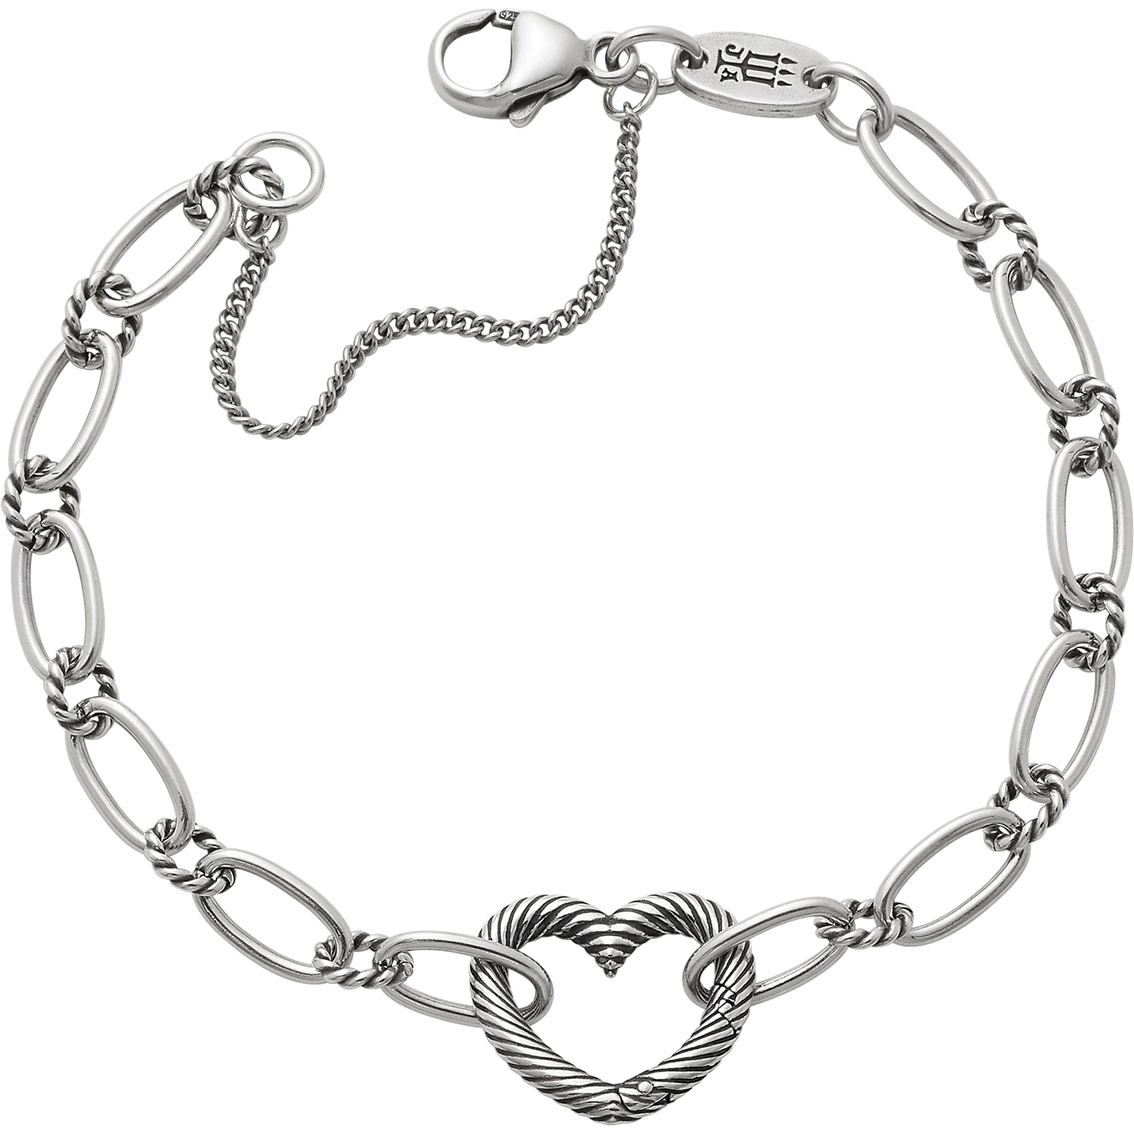 James Avery Changeable Heart Charm Bracelet Silver Bracelets Jewelry Watches Shop The Exchange